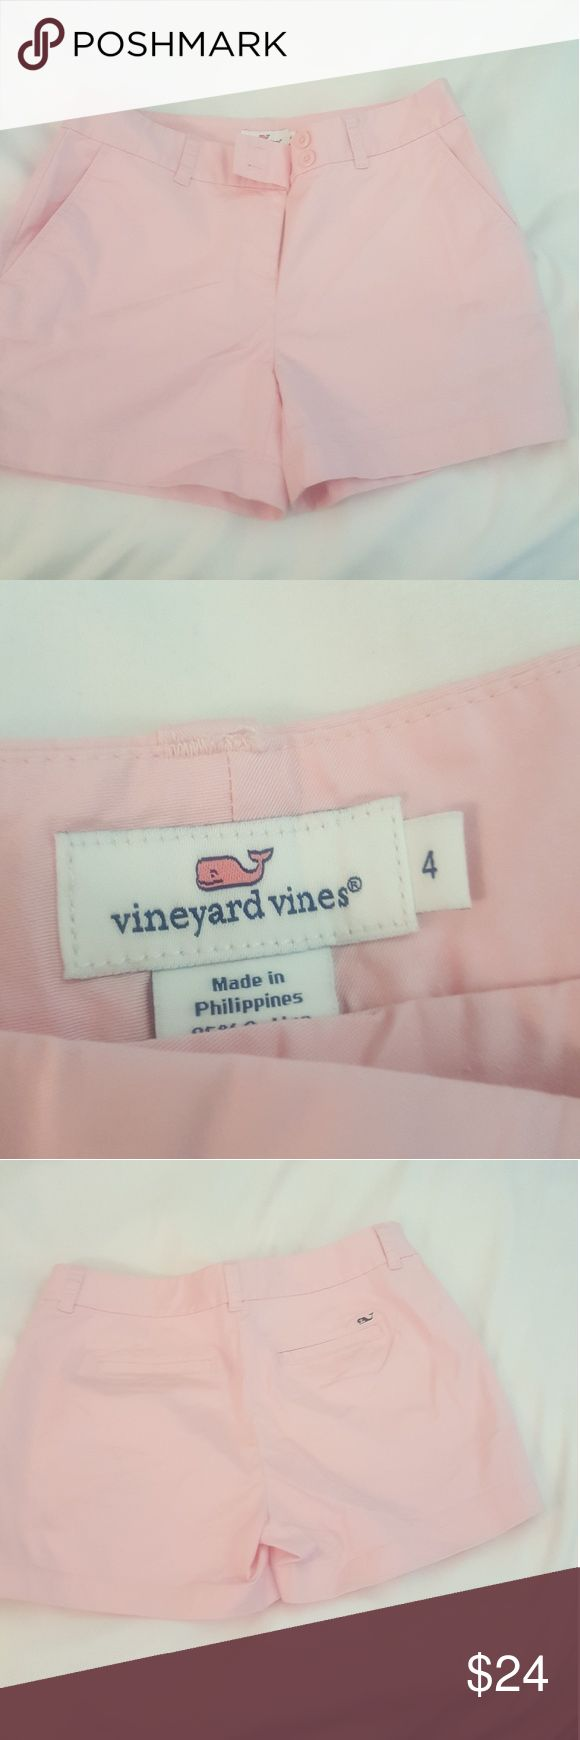 NWOT Vineyard Vines Shorts Light pink Vineyard Vines shorts. Took the tag off when I got them home, and never wore them. Flawless perfect condition,  5 in inseam. Vineyard Vines Shorts